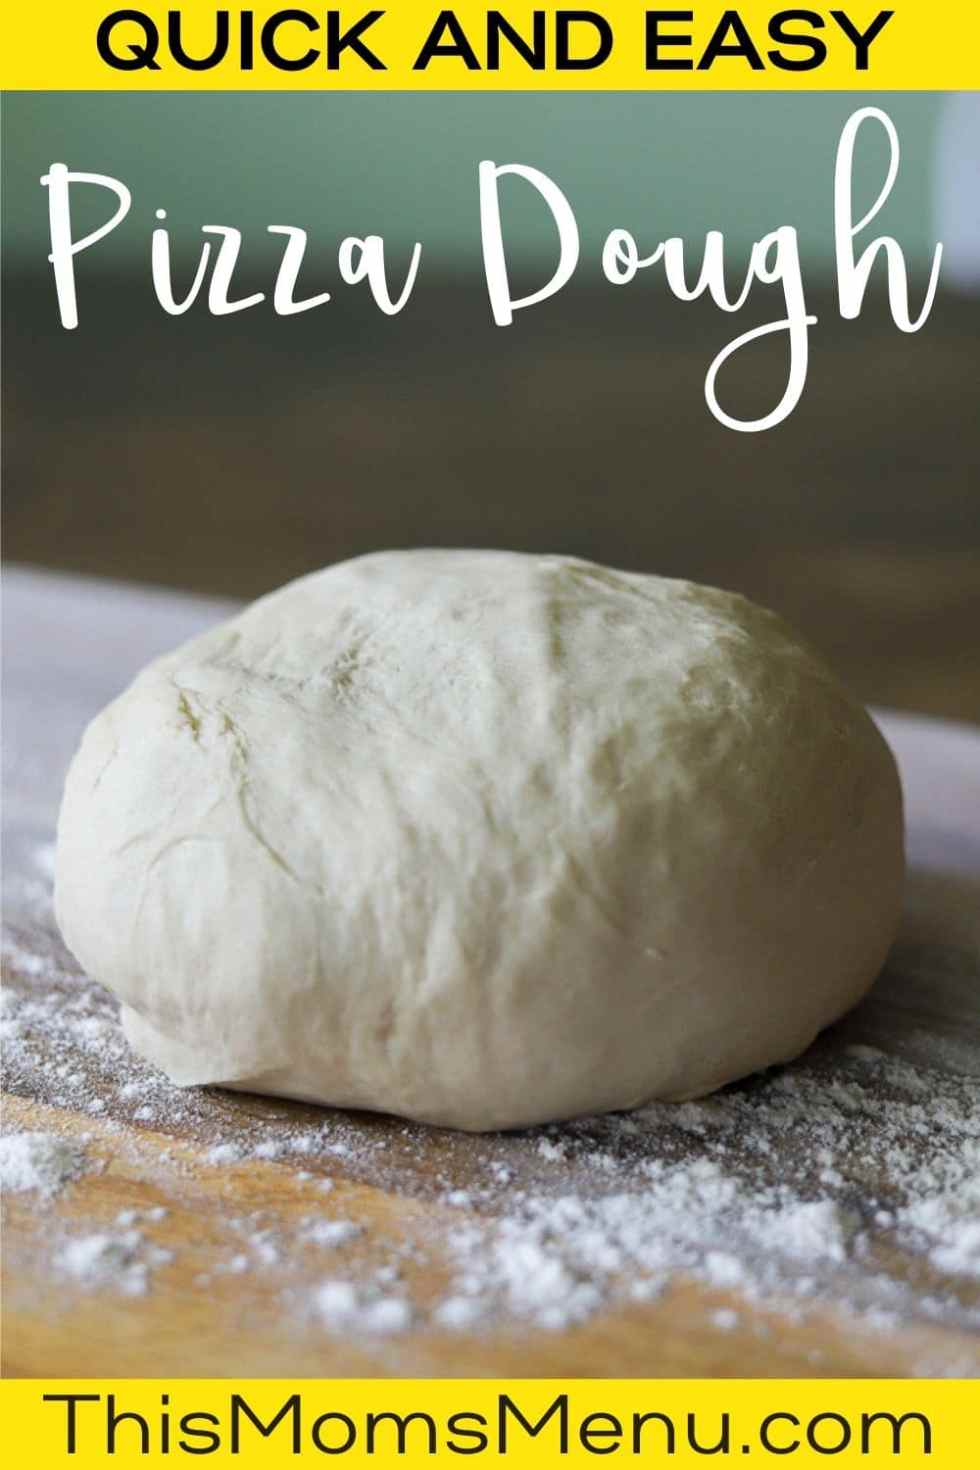 a ball of pizza dough on a floured wooden cutting board with text overlay